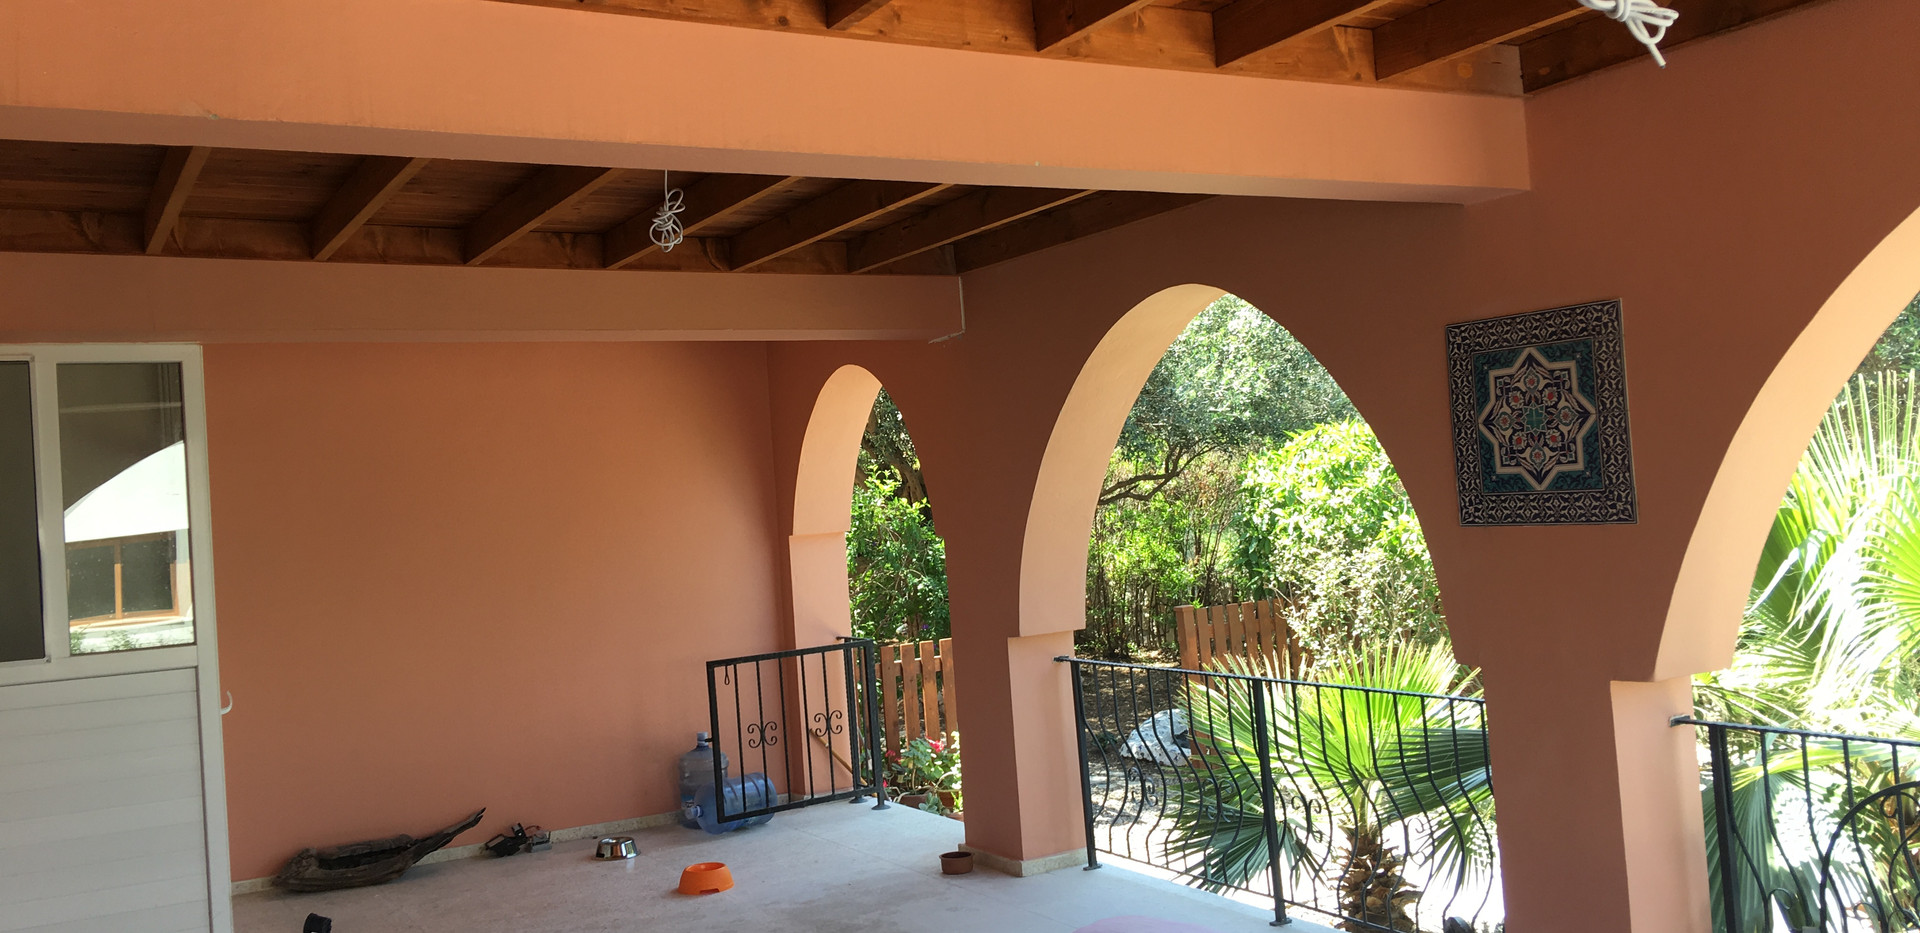 We also provide Property Management and Pool maintenance for this North Cyprus Property